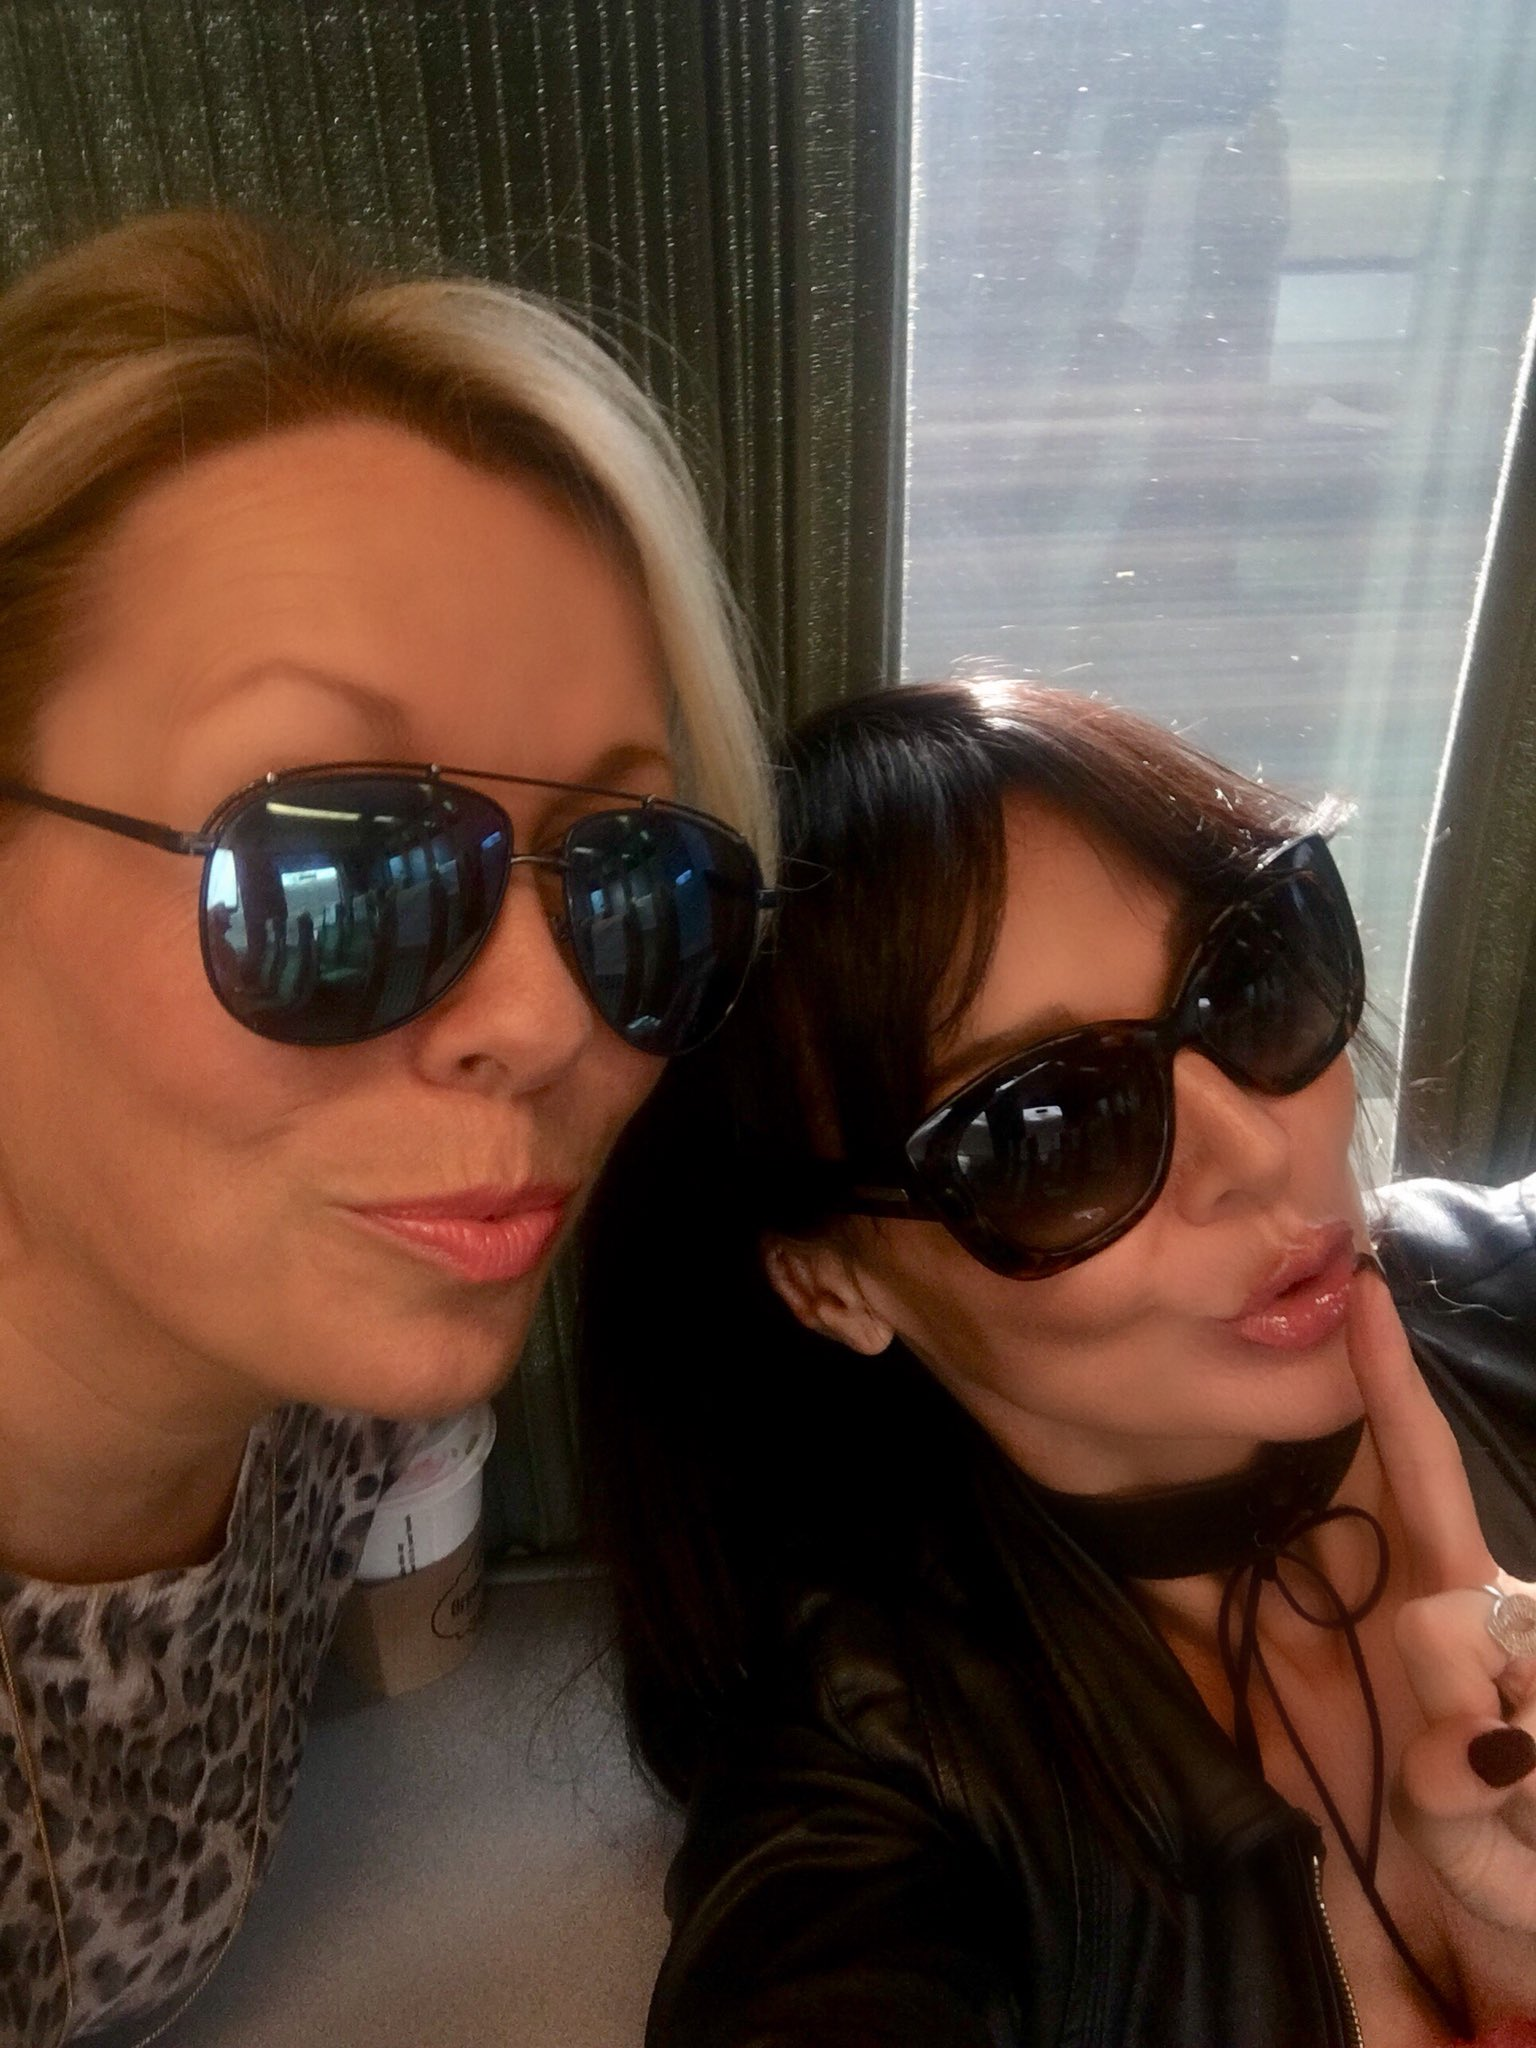 On another mad road trip with my gorgeous @WhiteMgmnt ! What are we up to now? Filming flirting and fun ! #tv #fun https://t.co/9siLscFQWX